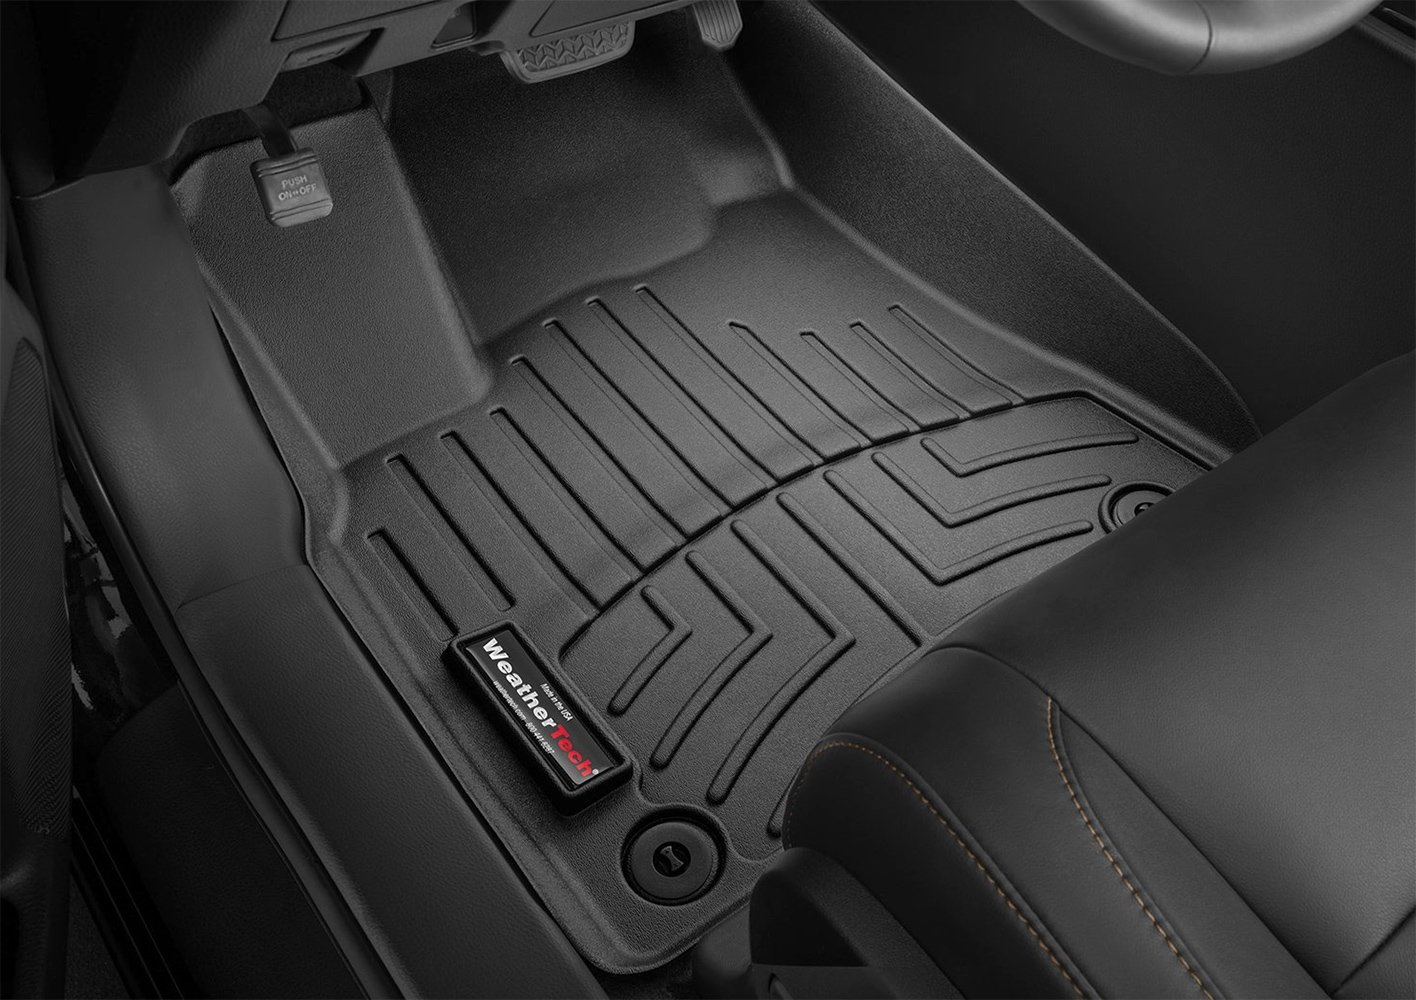 WeatherTech DigitalFit Floor Liners - Free Shipping & Low Price Guarantee